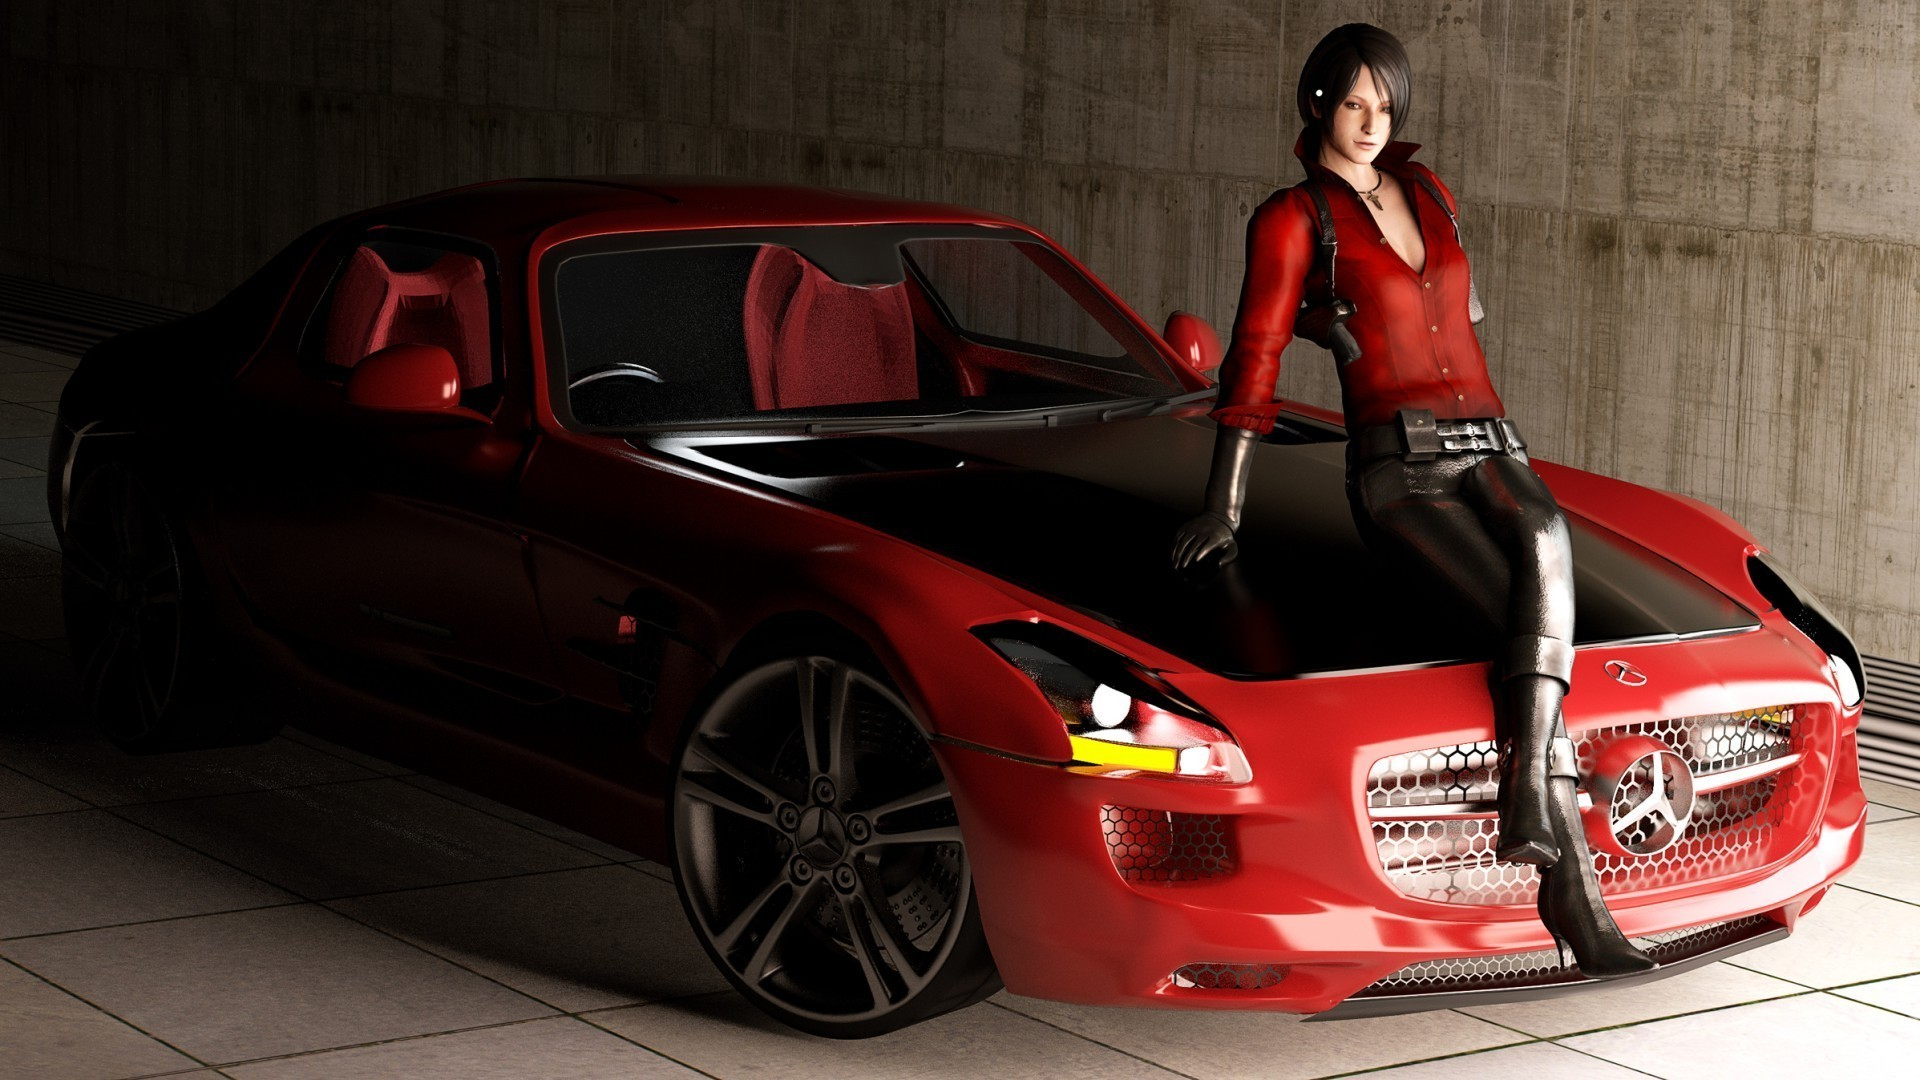 The girl in the red Mercedes-Benz